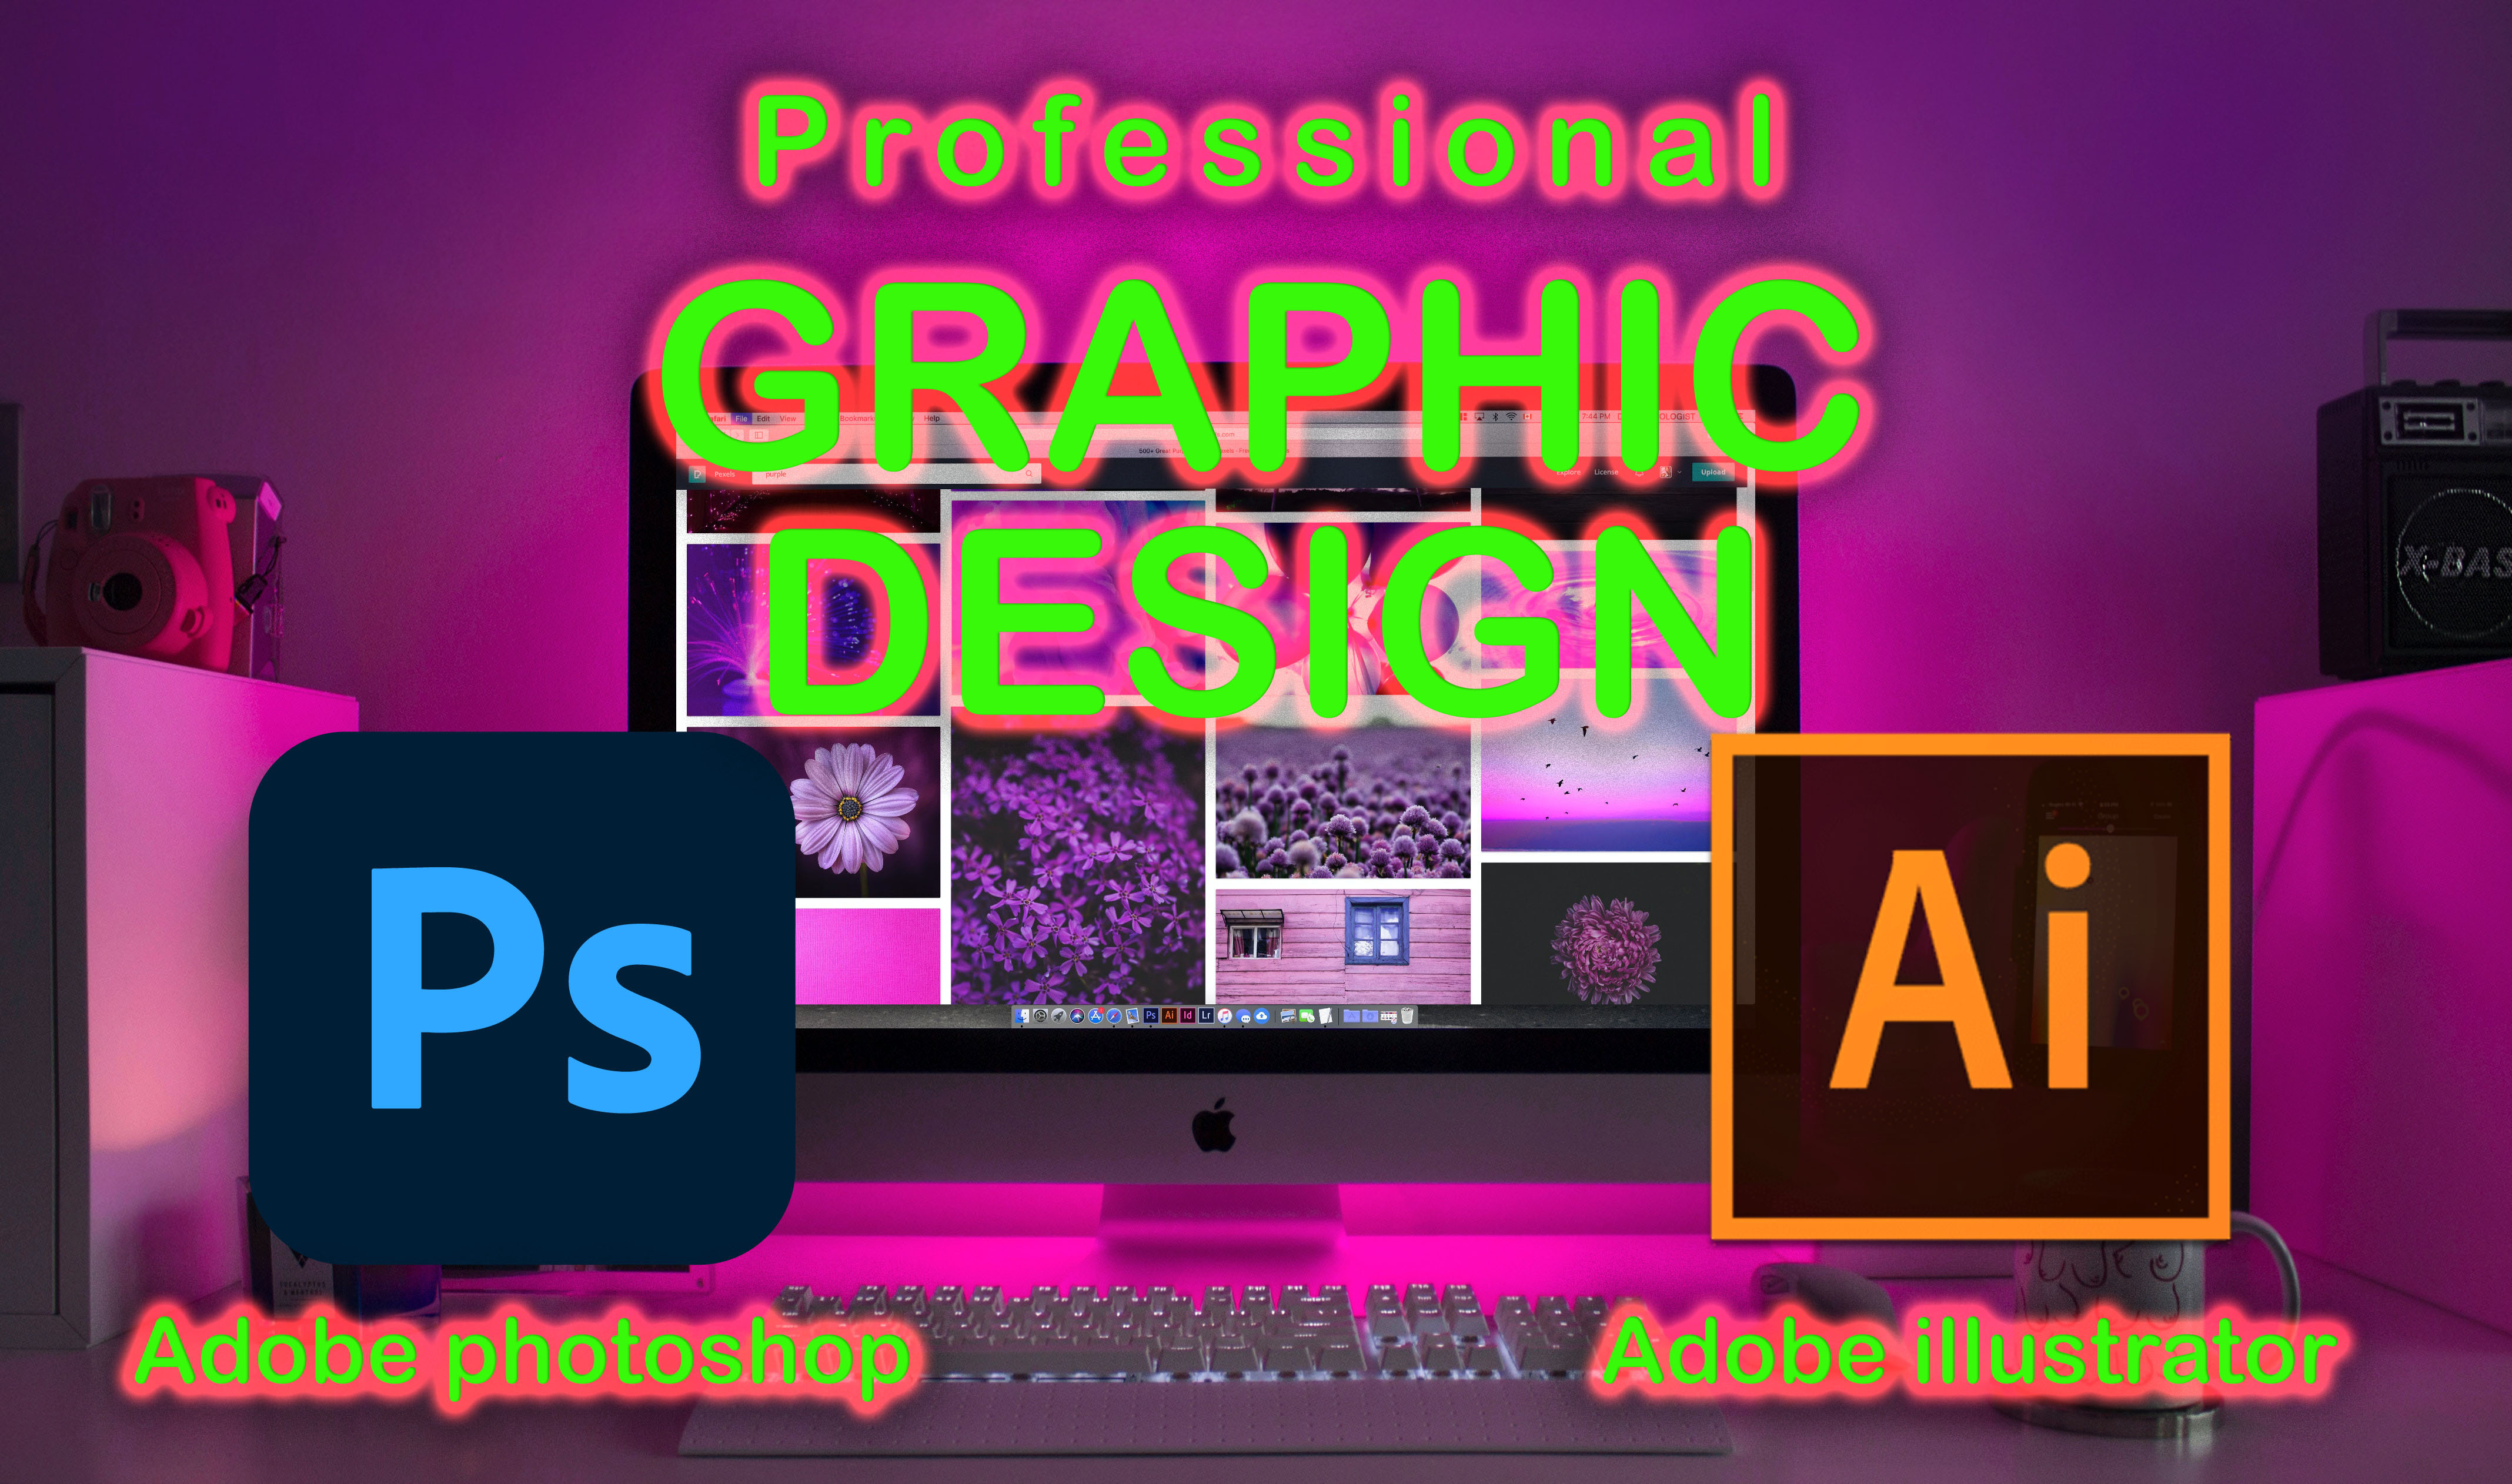 I will do any kind of graphic design using photoshop illustrator